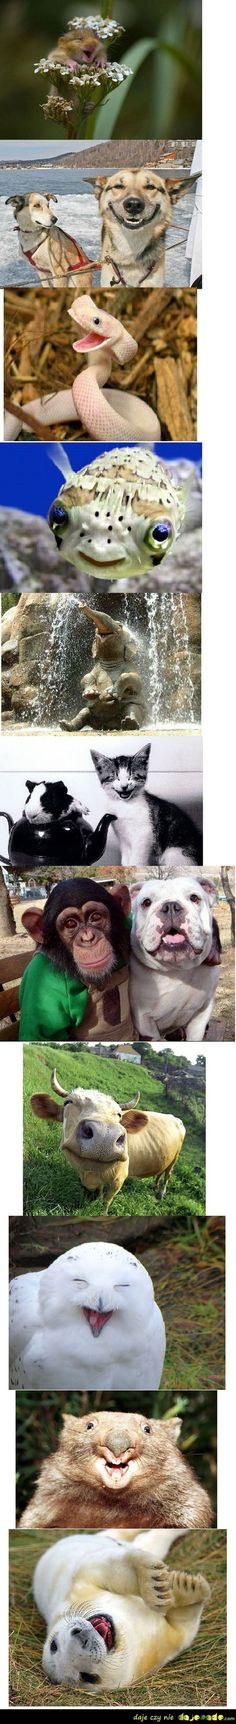 Smiling animals :D